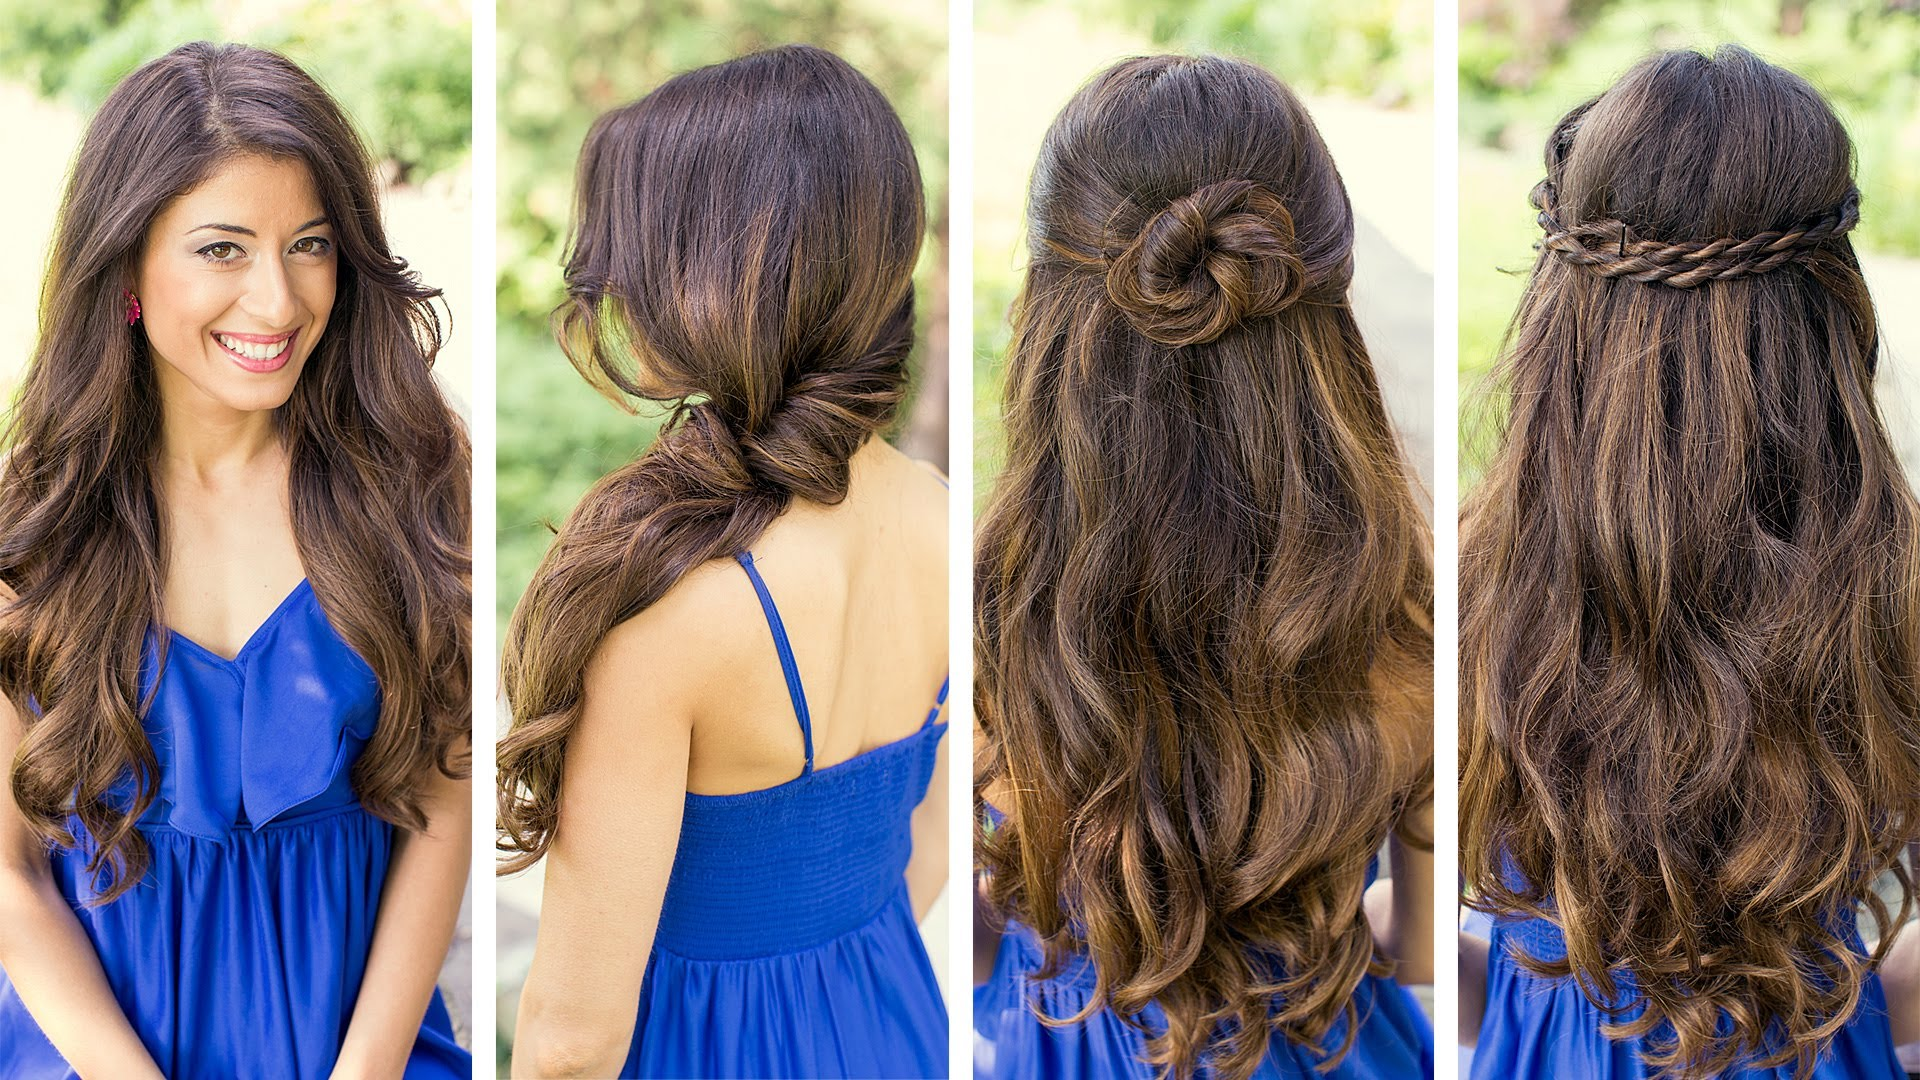 cutest-hairstyles-for-long-short-curly-hair-09